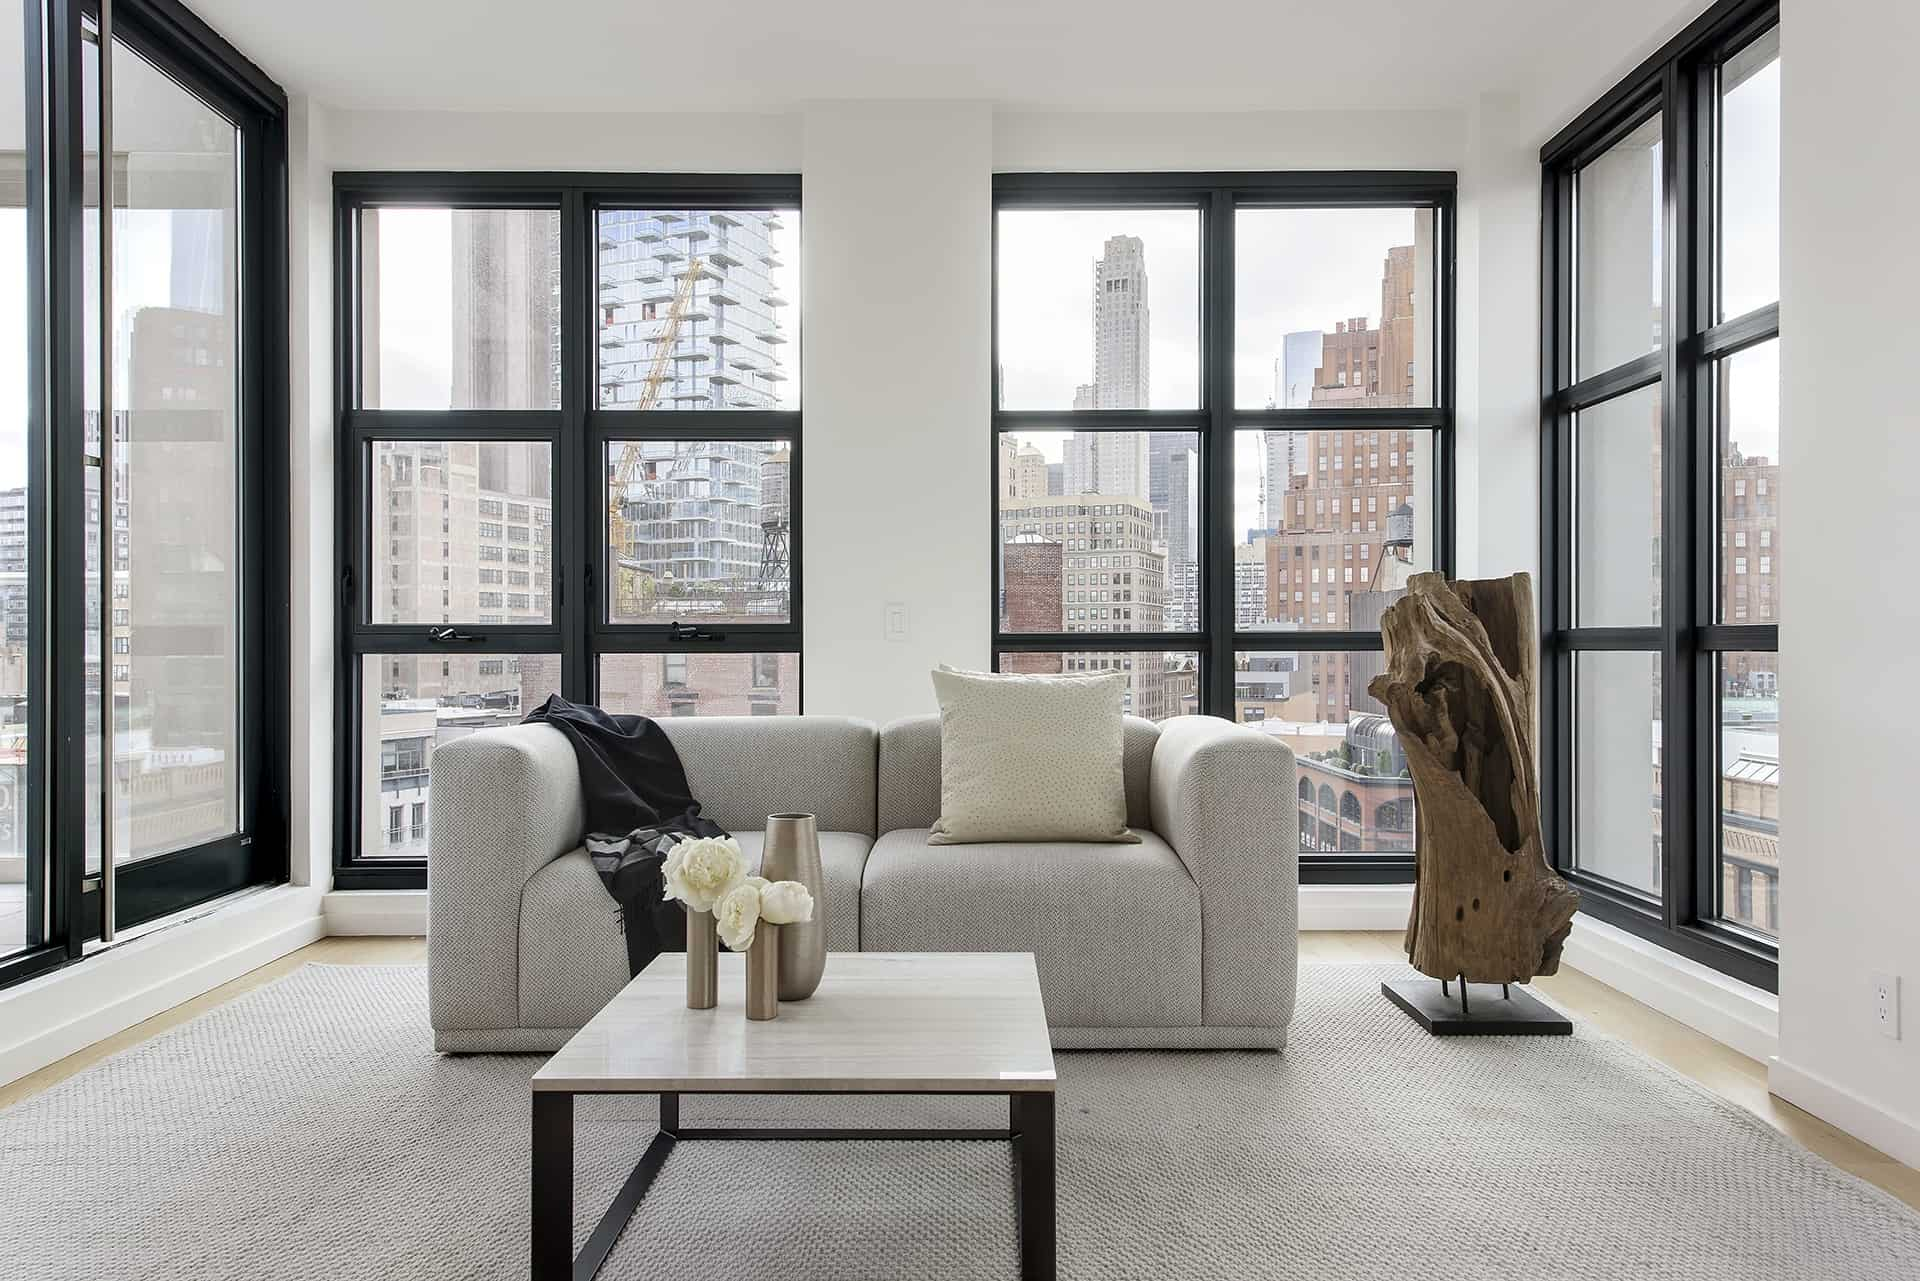 Minimalist-Penthouse-New York-12-1 Kindesign